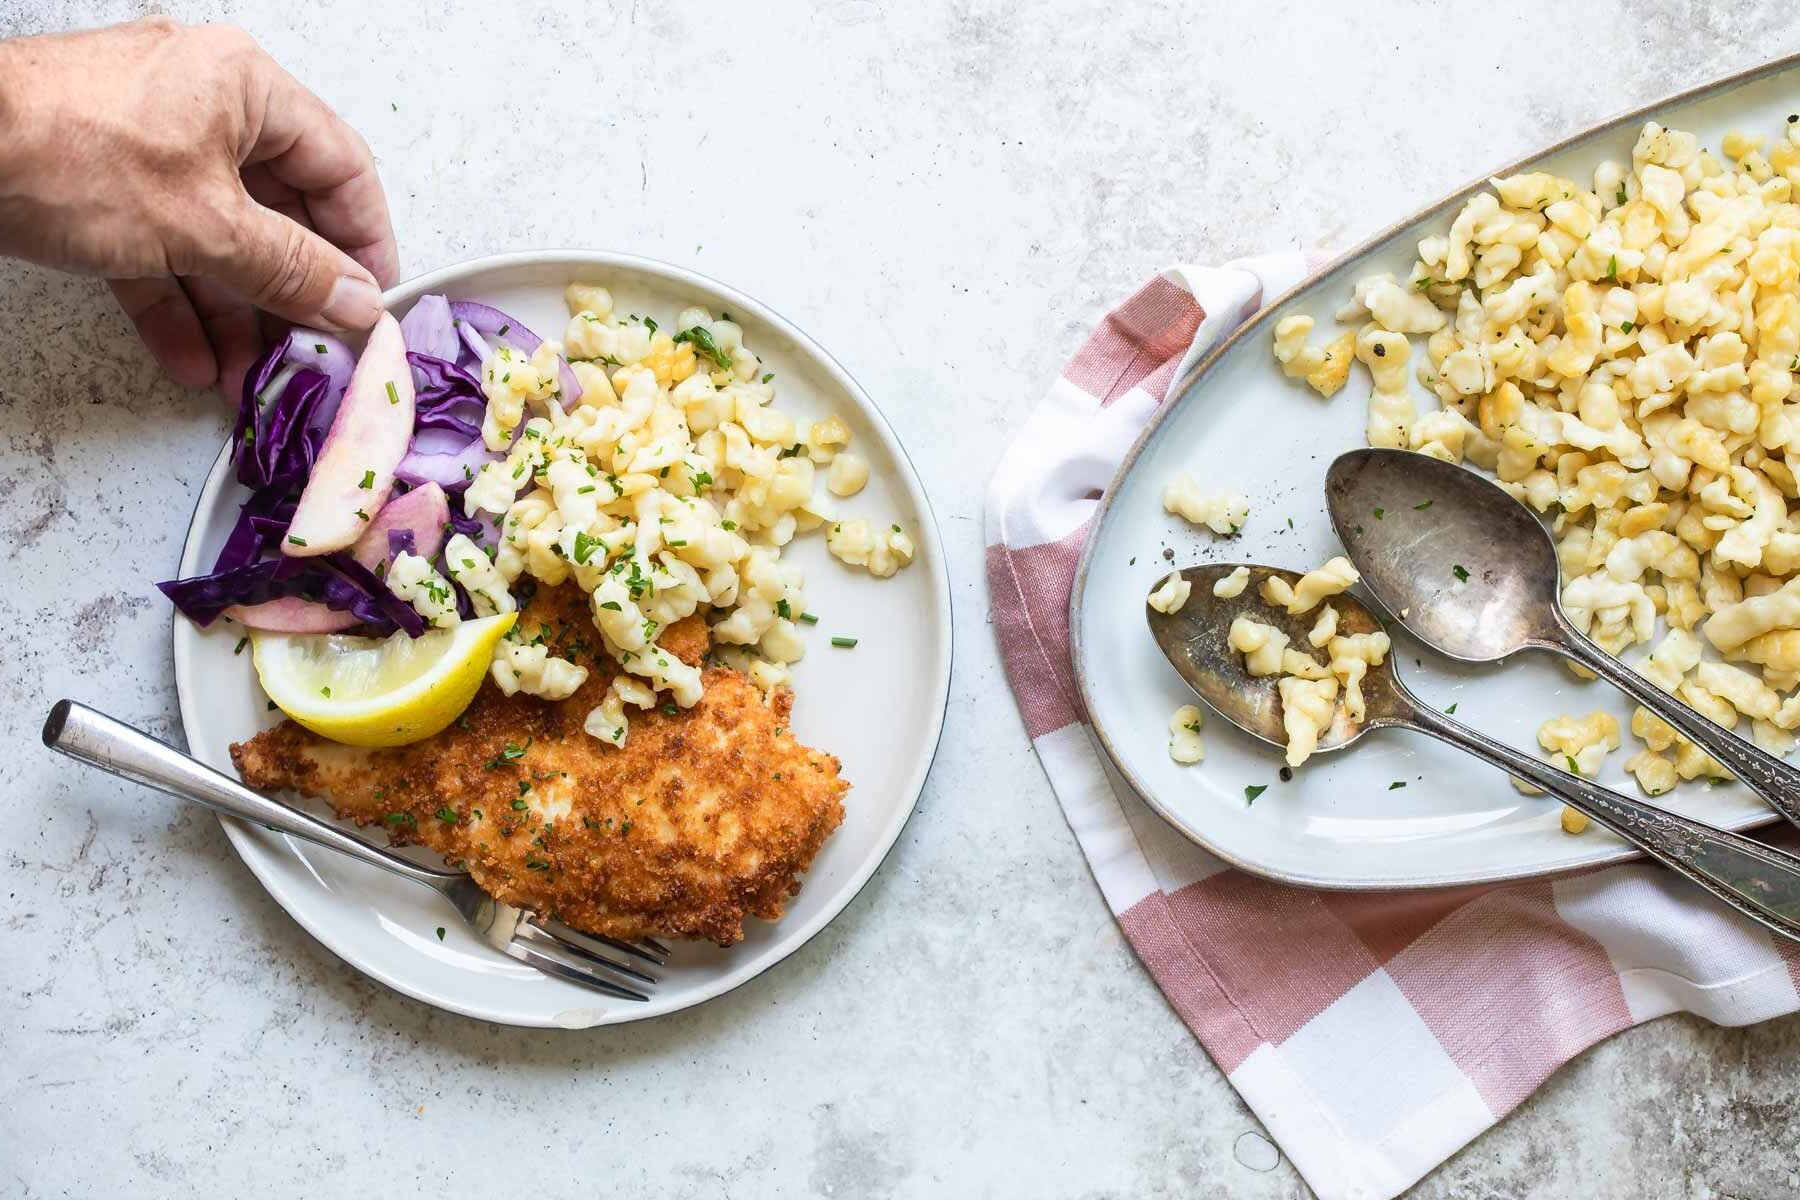 Plates with spaetzle, schnitzel, and red cabbage.